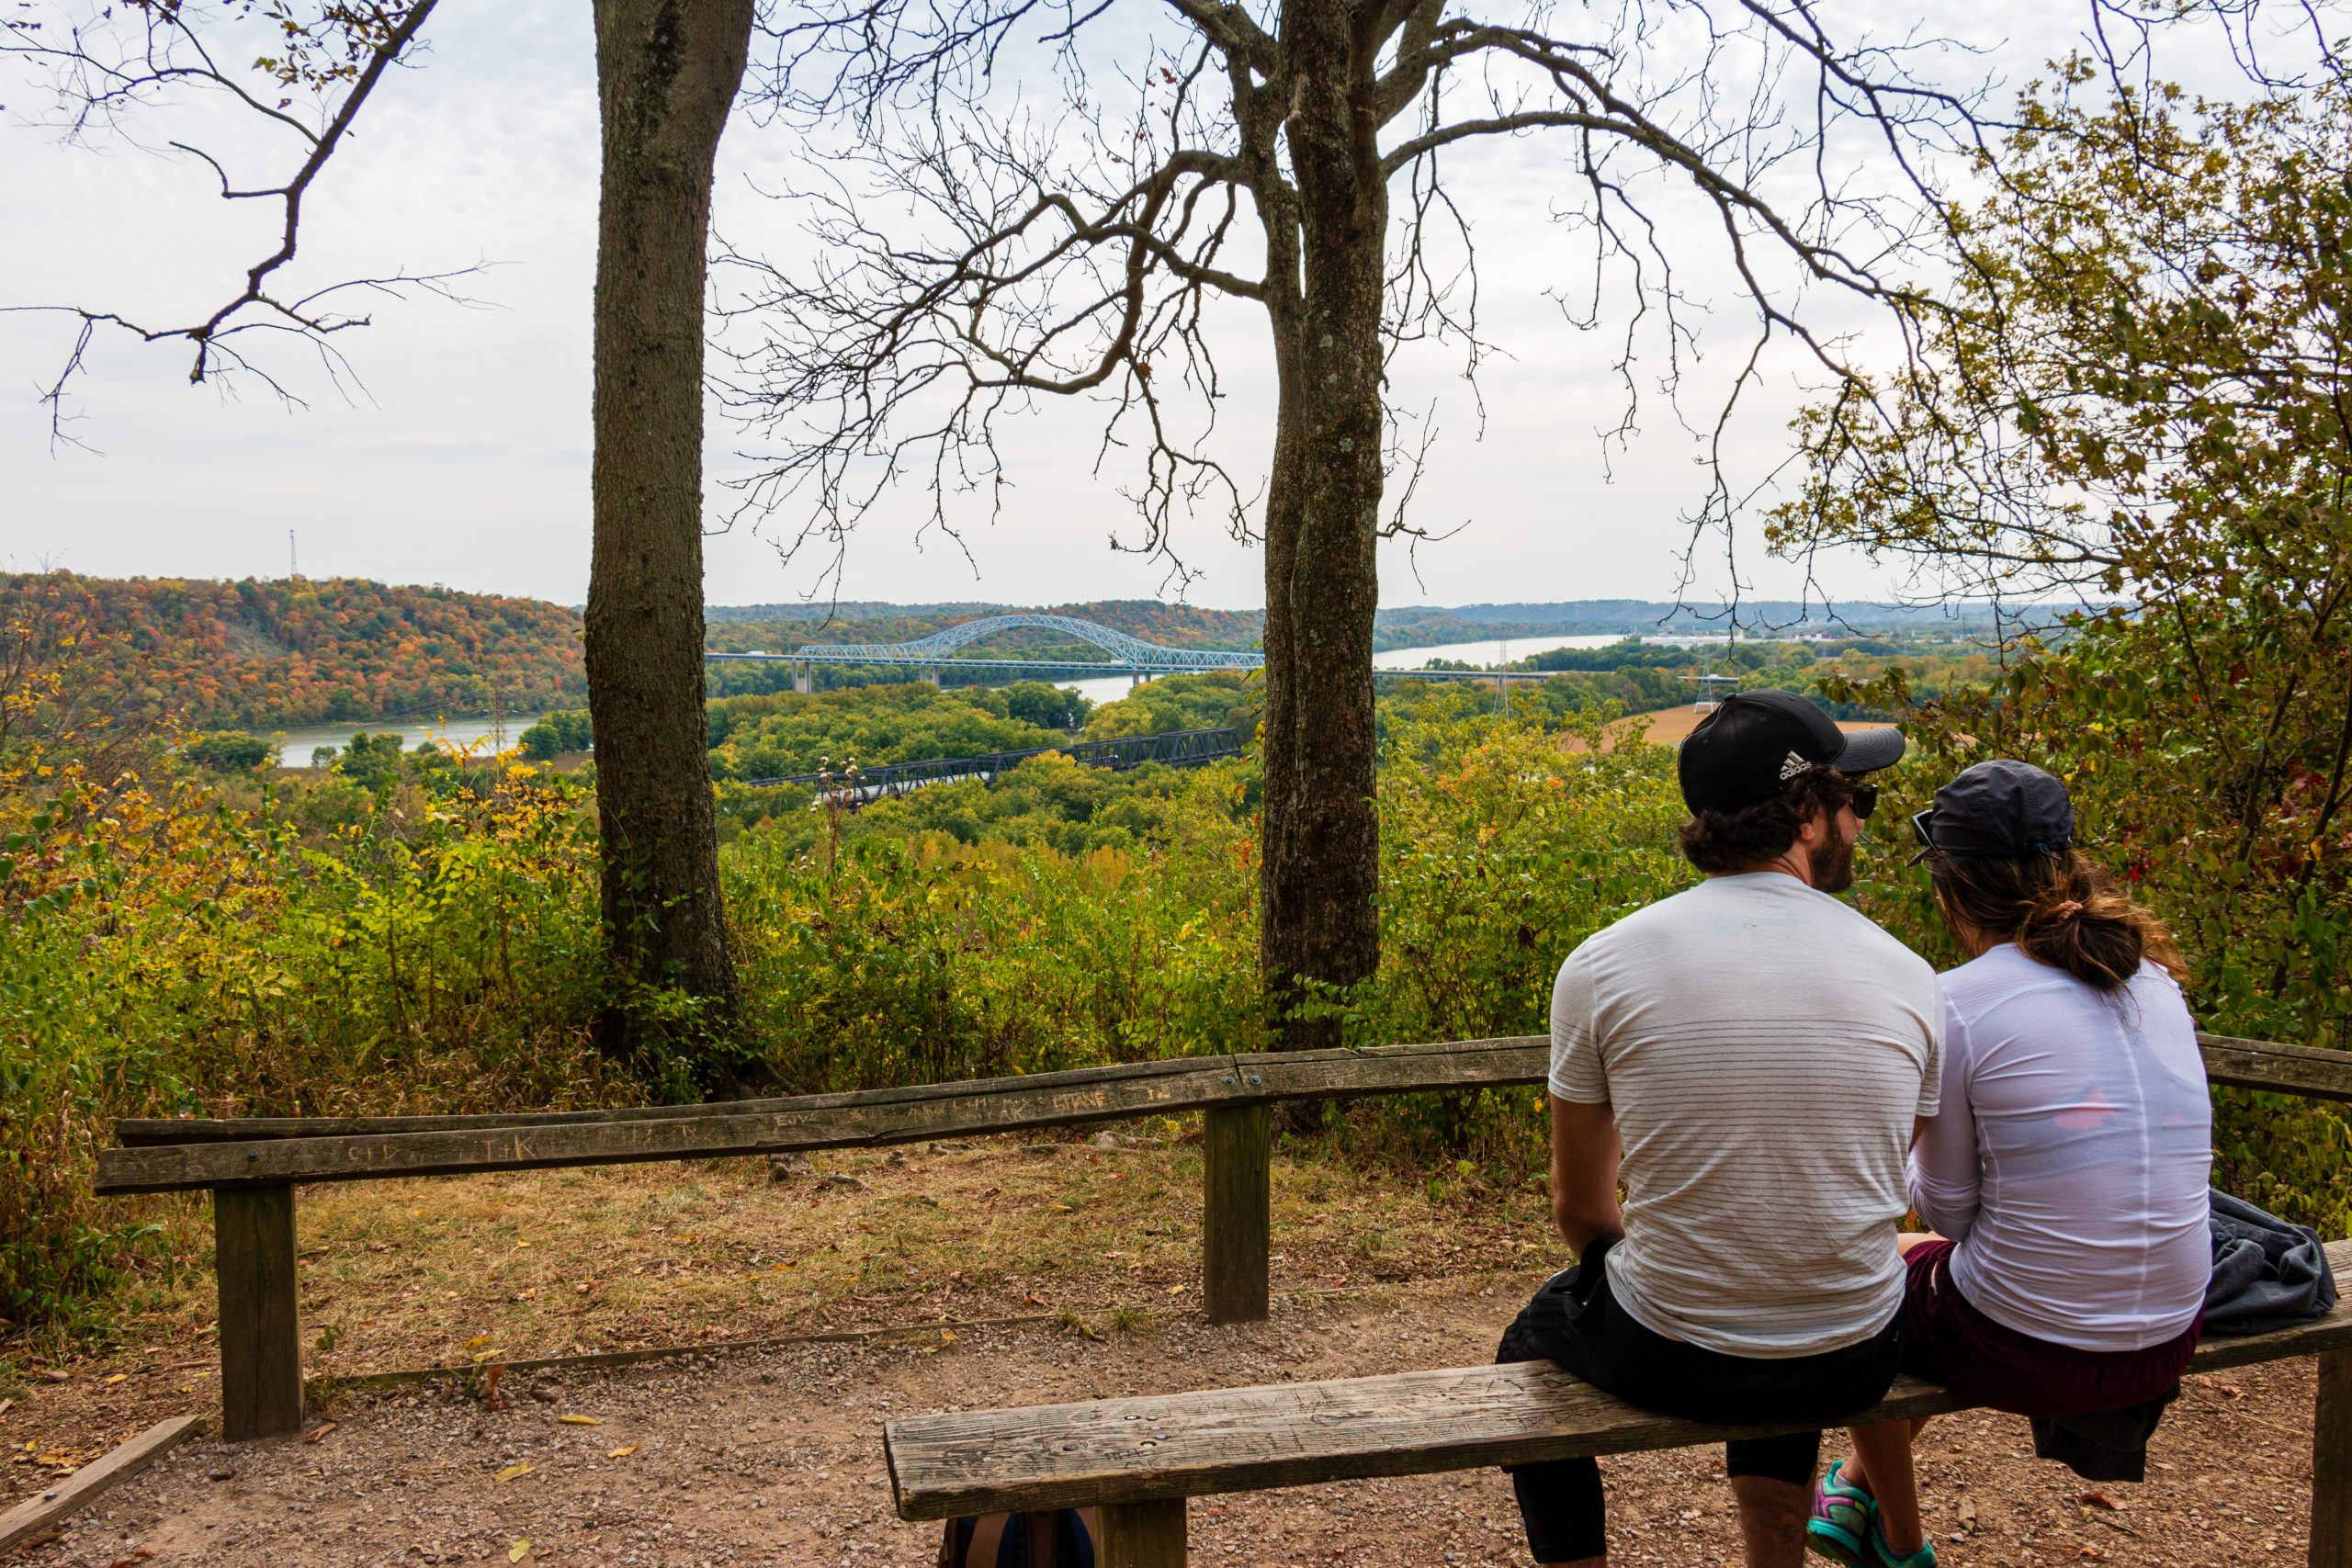 A couple sits on a bench on the Miami Fort Trail, overlooking the confluence of the Great Miami and Ohio rivers.